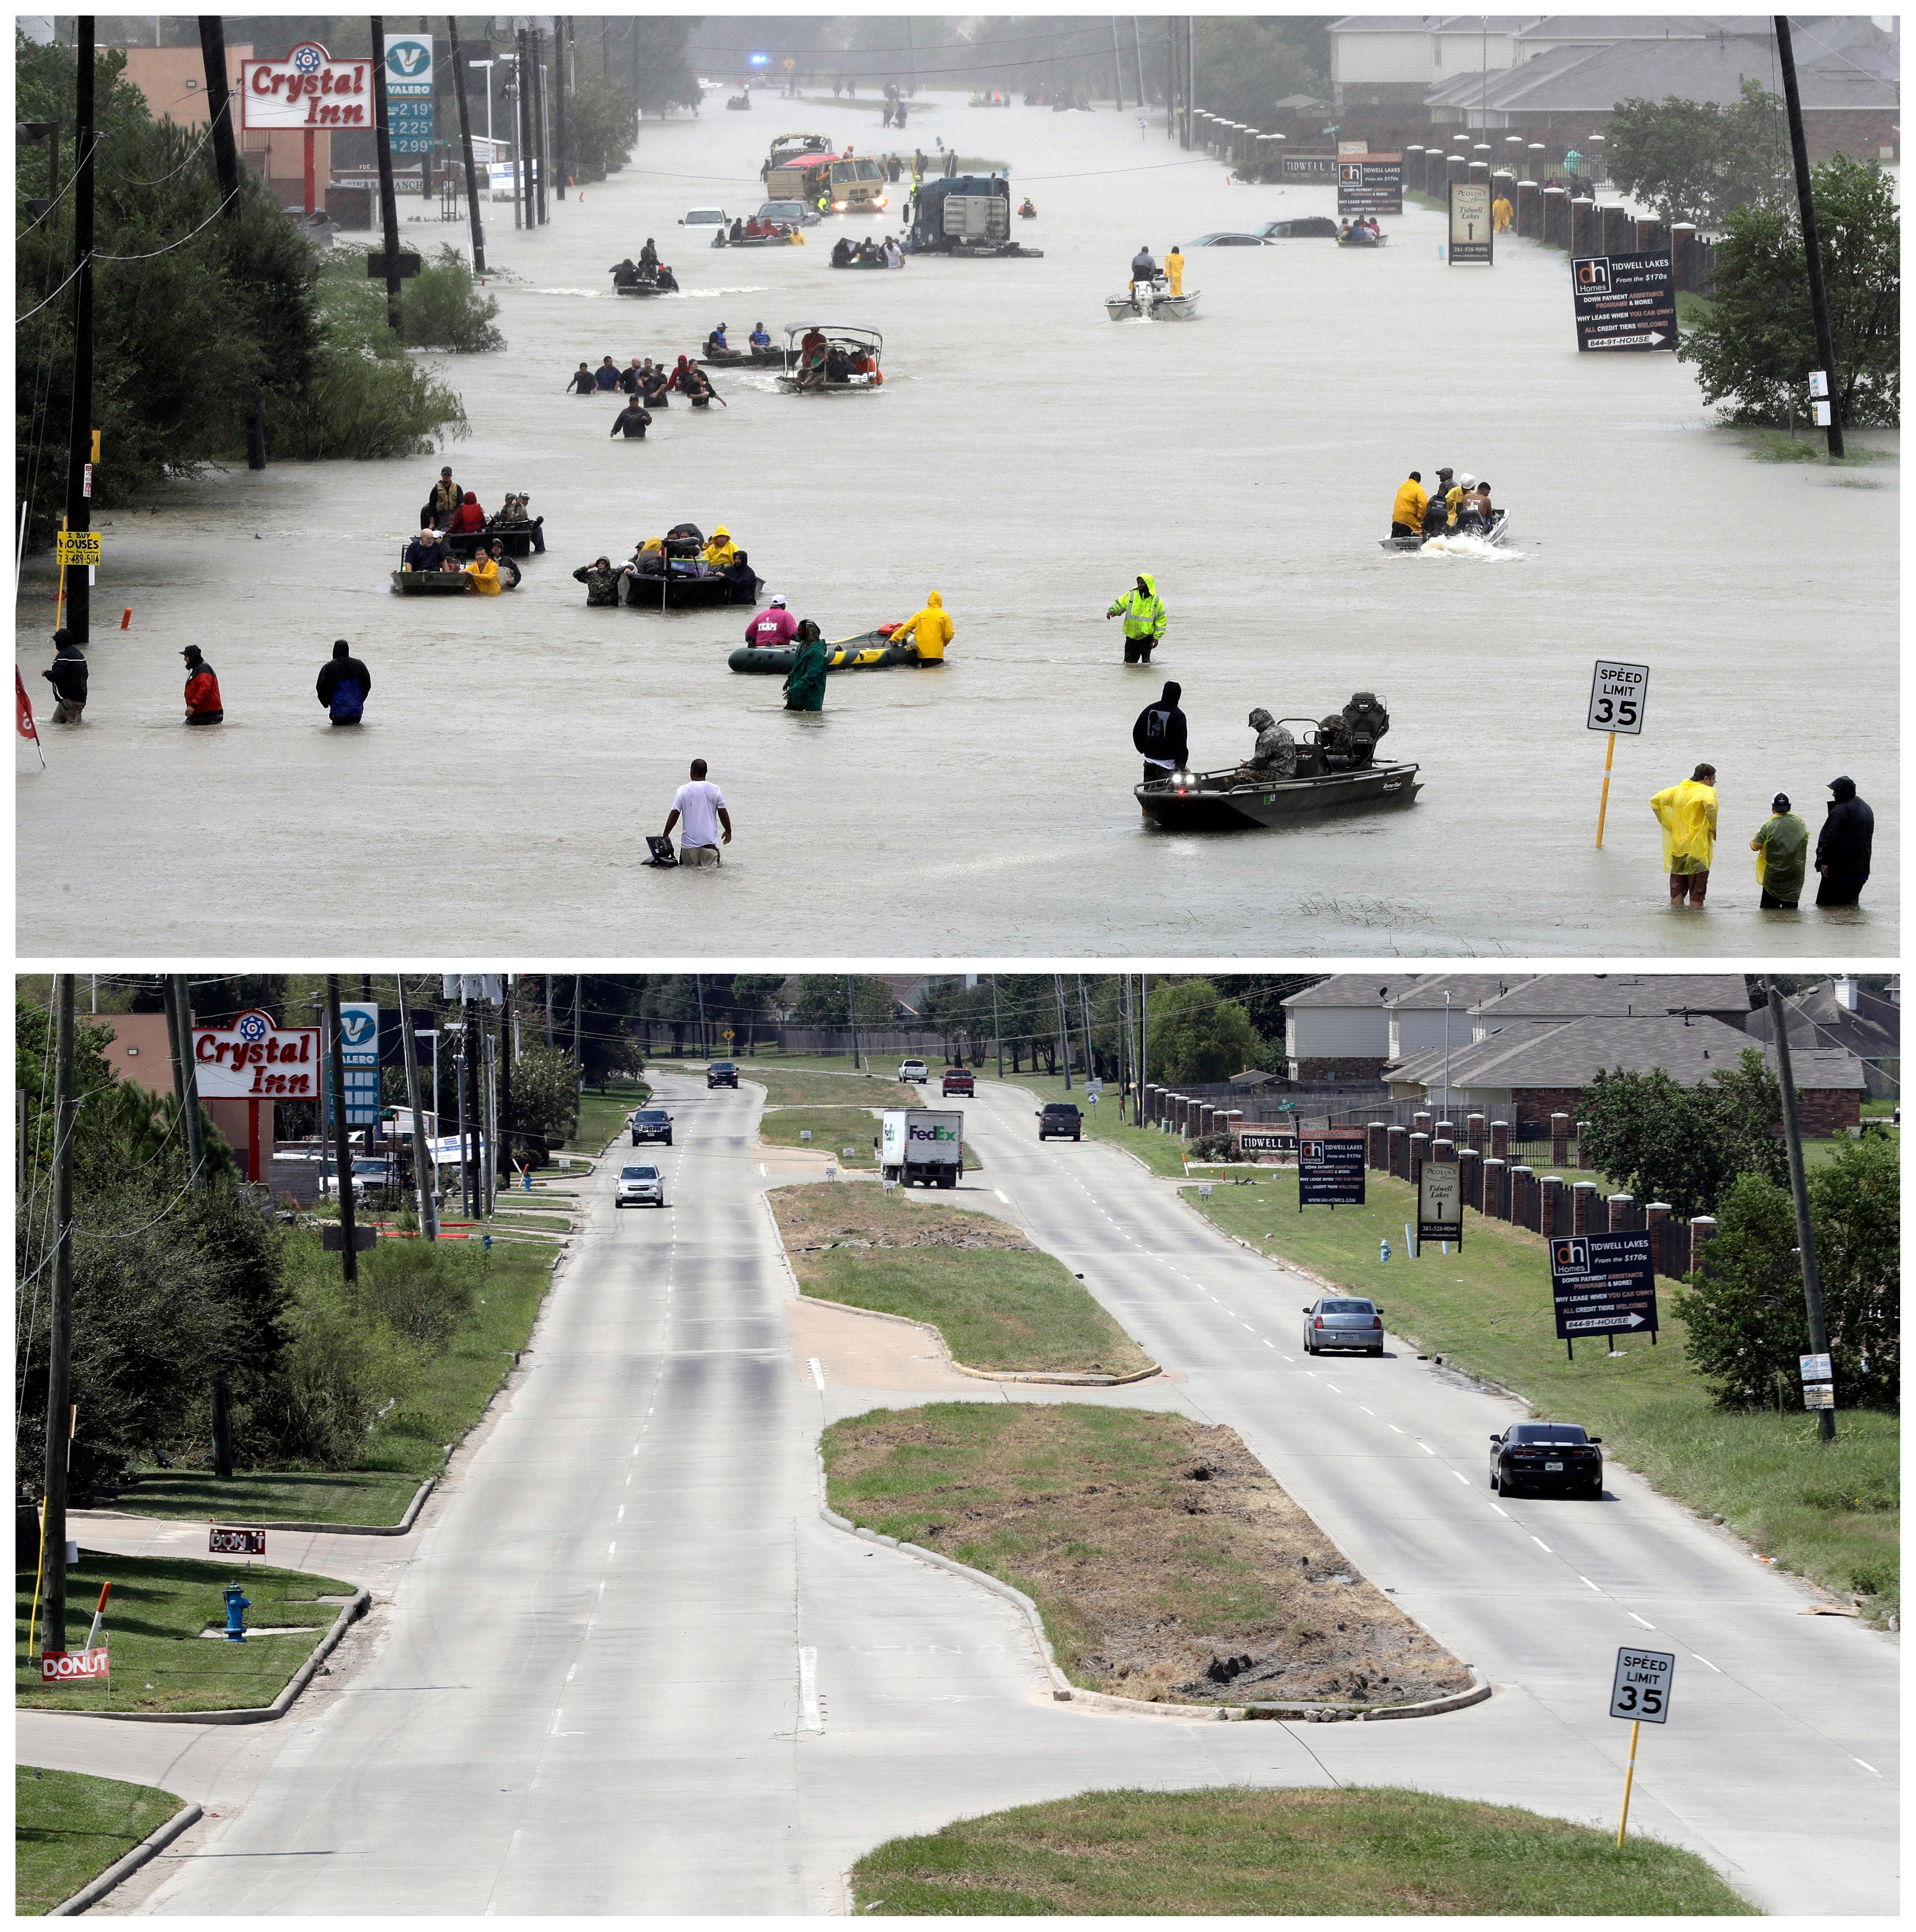 FILE - In this photo combination, rescue boats evacuate people from a flooded street in Houston, on Aug. 28, 2017, top, following Tropical Storm Harvey, and cars drive down the same street on Sept. 5, bottom, after the floodwaters receded. (AP Photo/David J. Phillip, File)